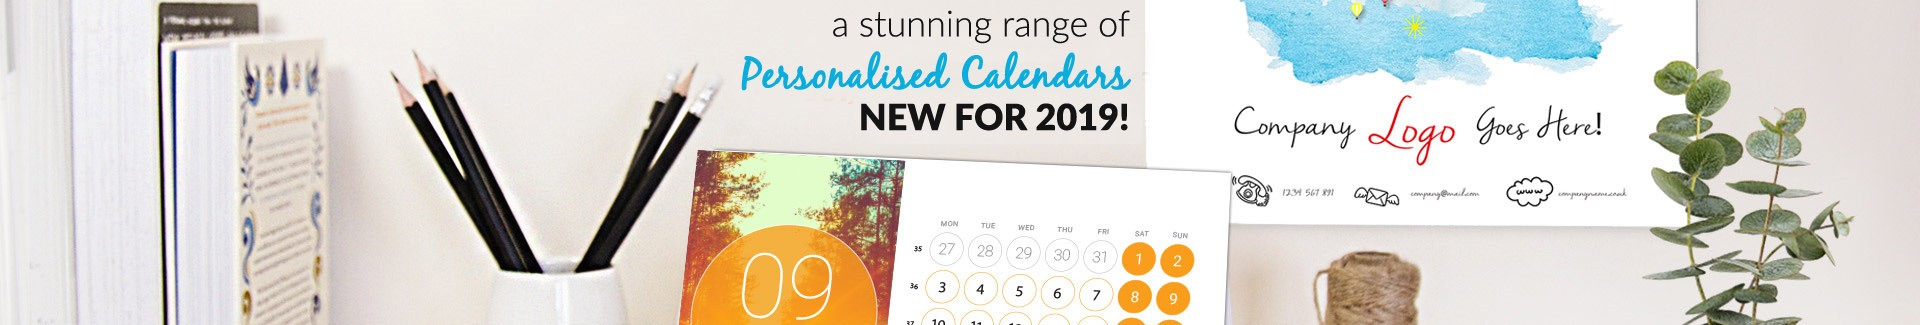 Personalised calendars for 2019